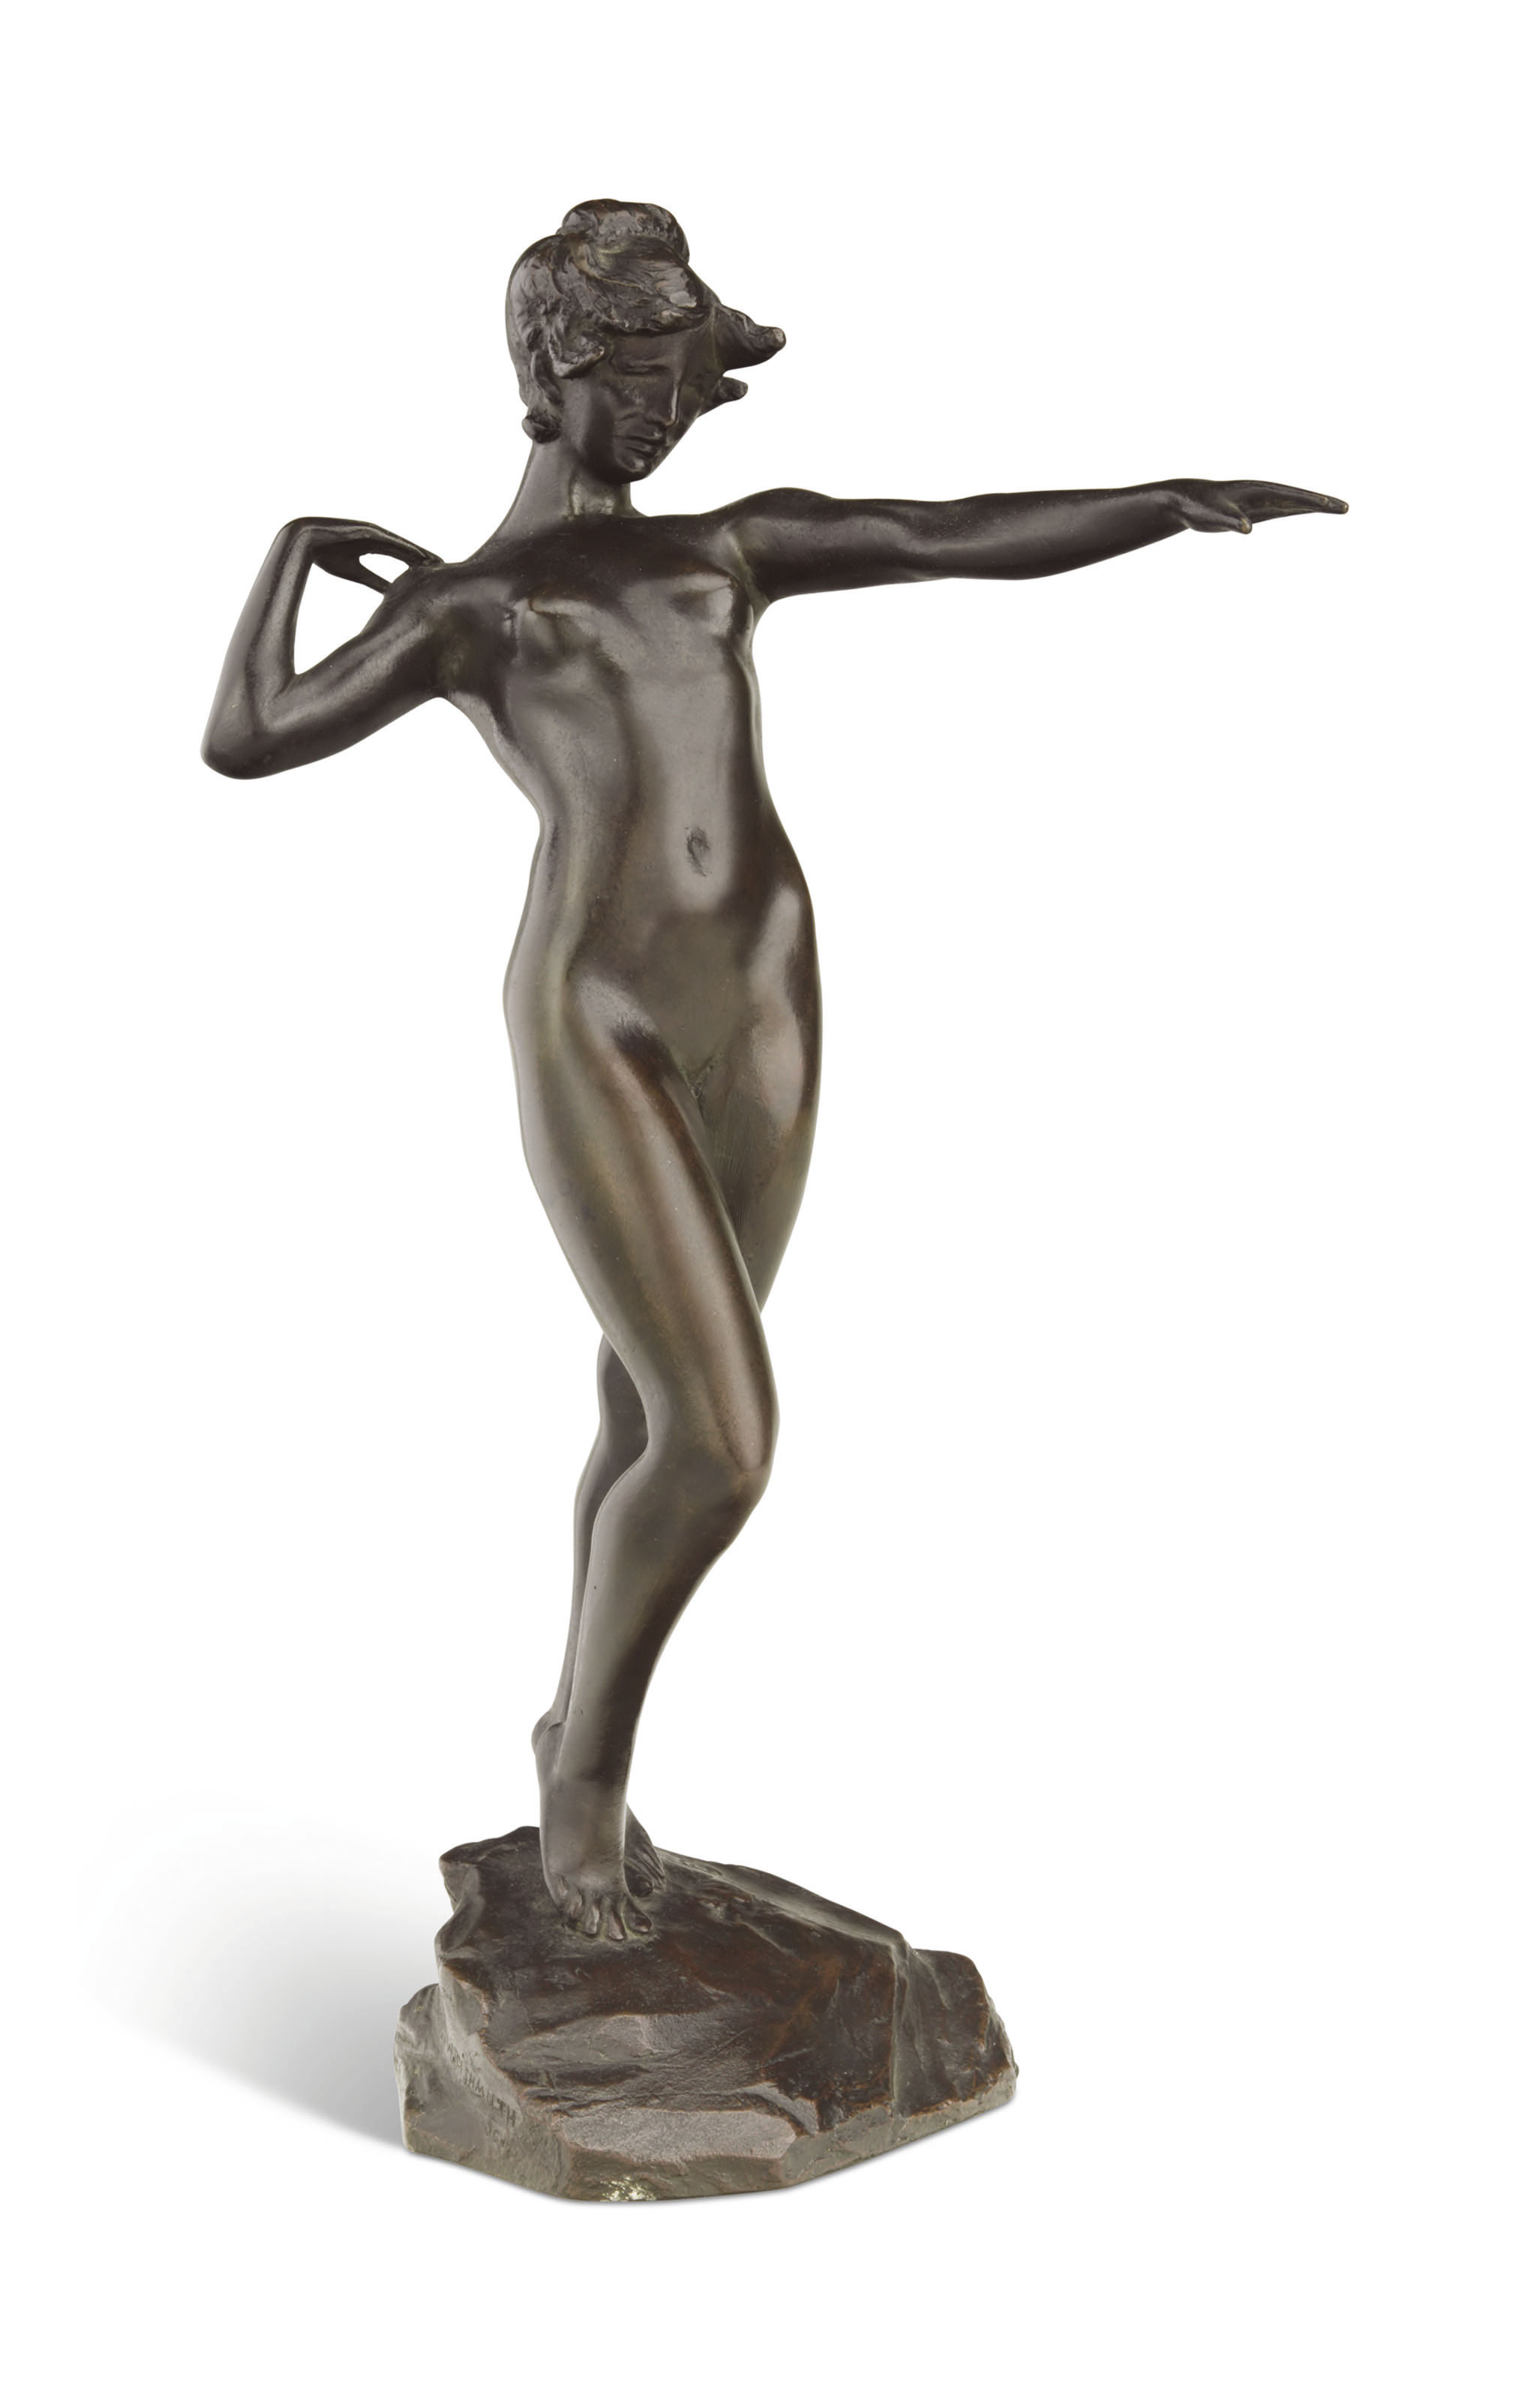 Harriet Whitney Frishmuth (Ame